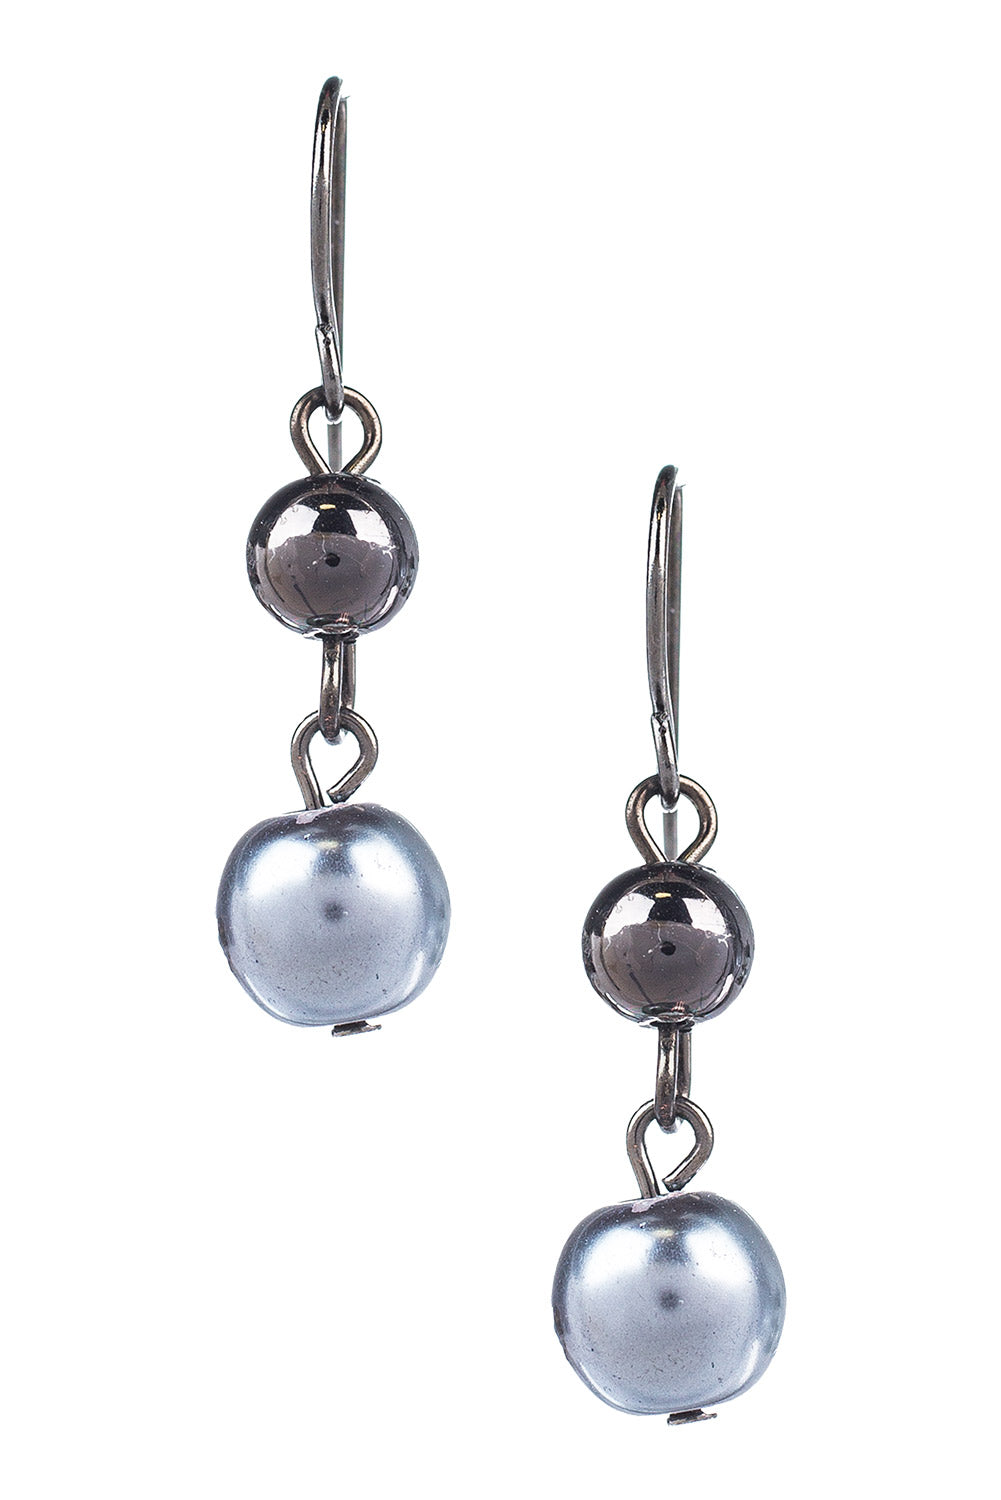 Type 2 Pewter And Pearls Earrings